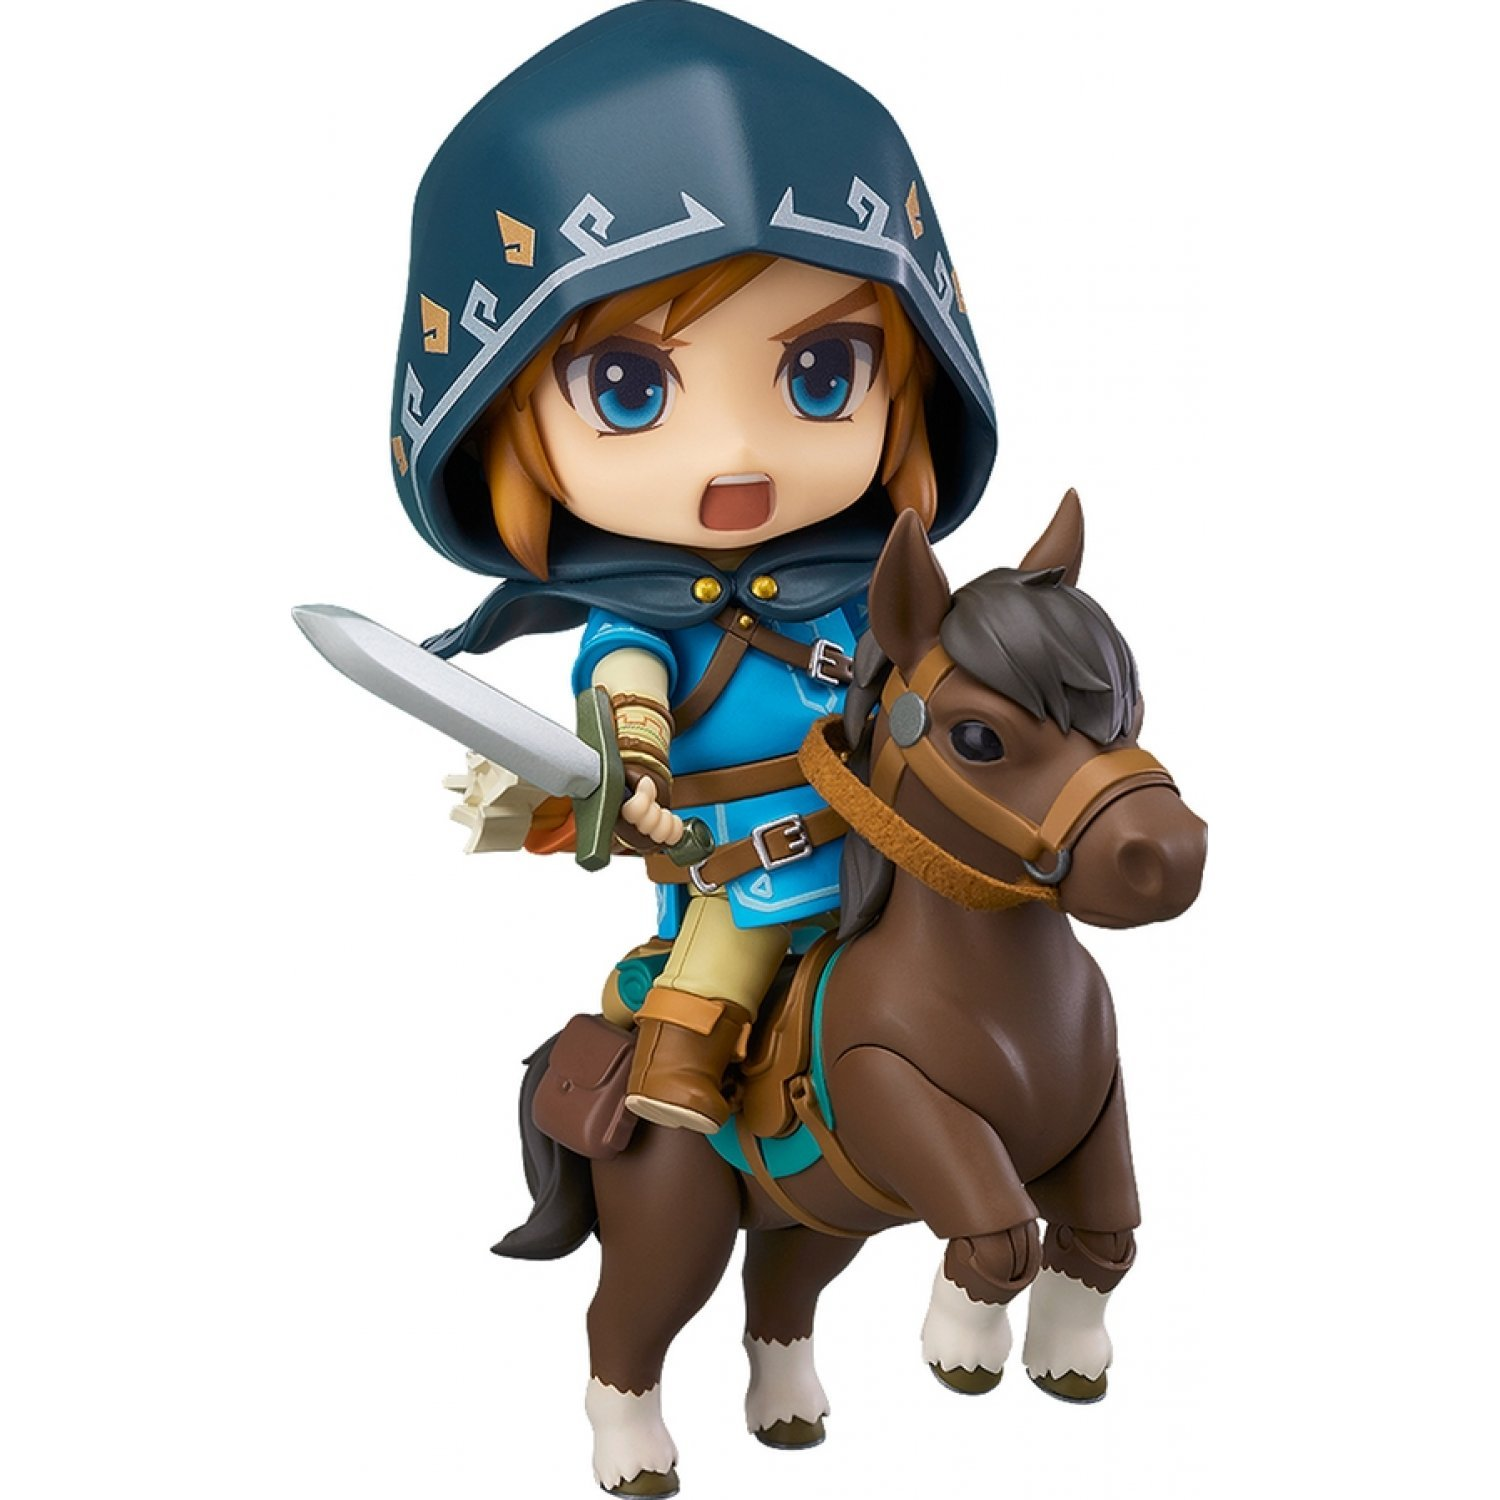 733-DX The Legend of Zelda Breath of the Wild: Link Breath of the Wild Ver.  DX Edition (Re-run)